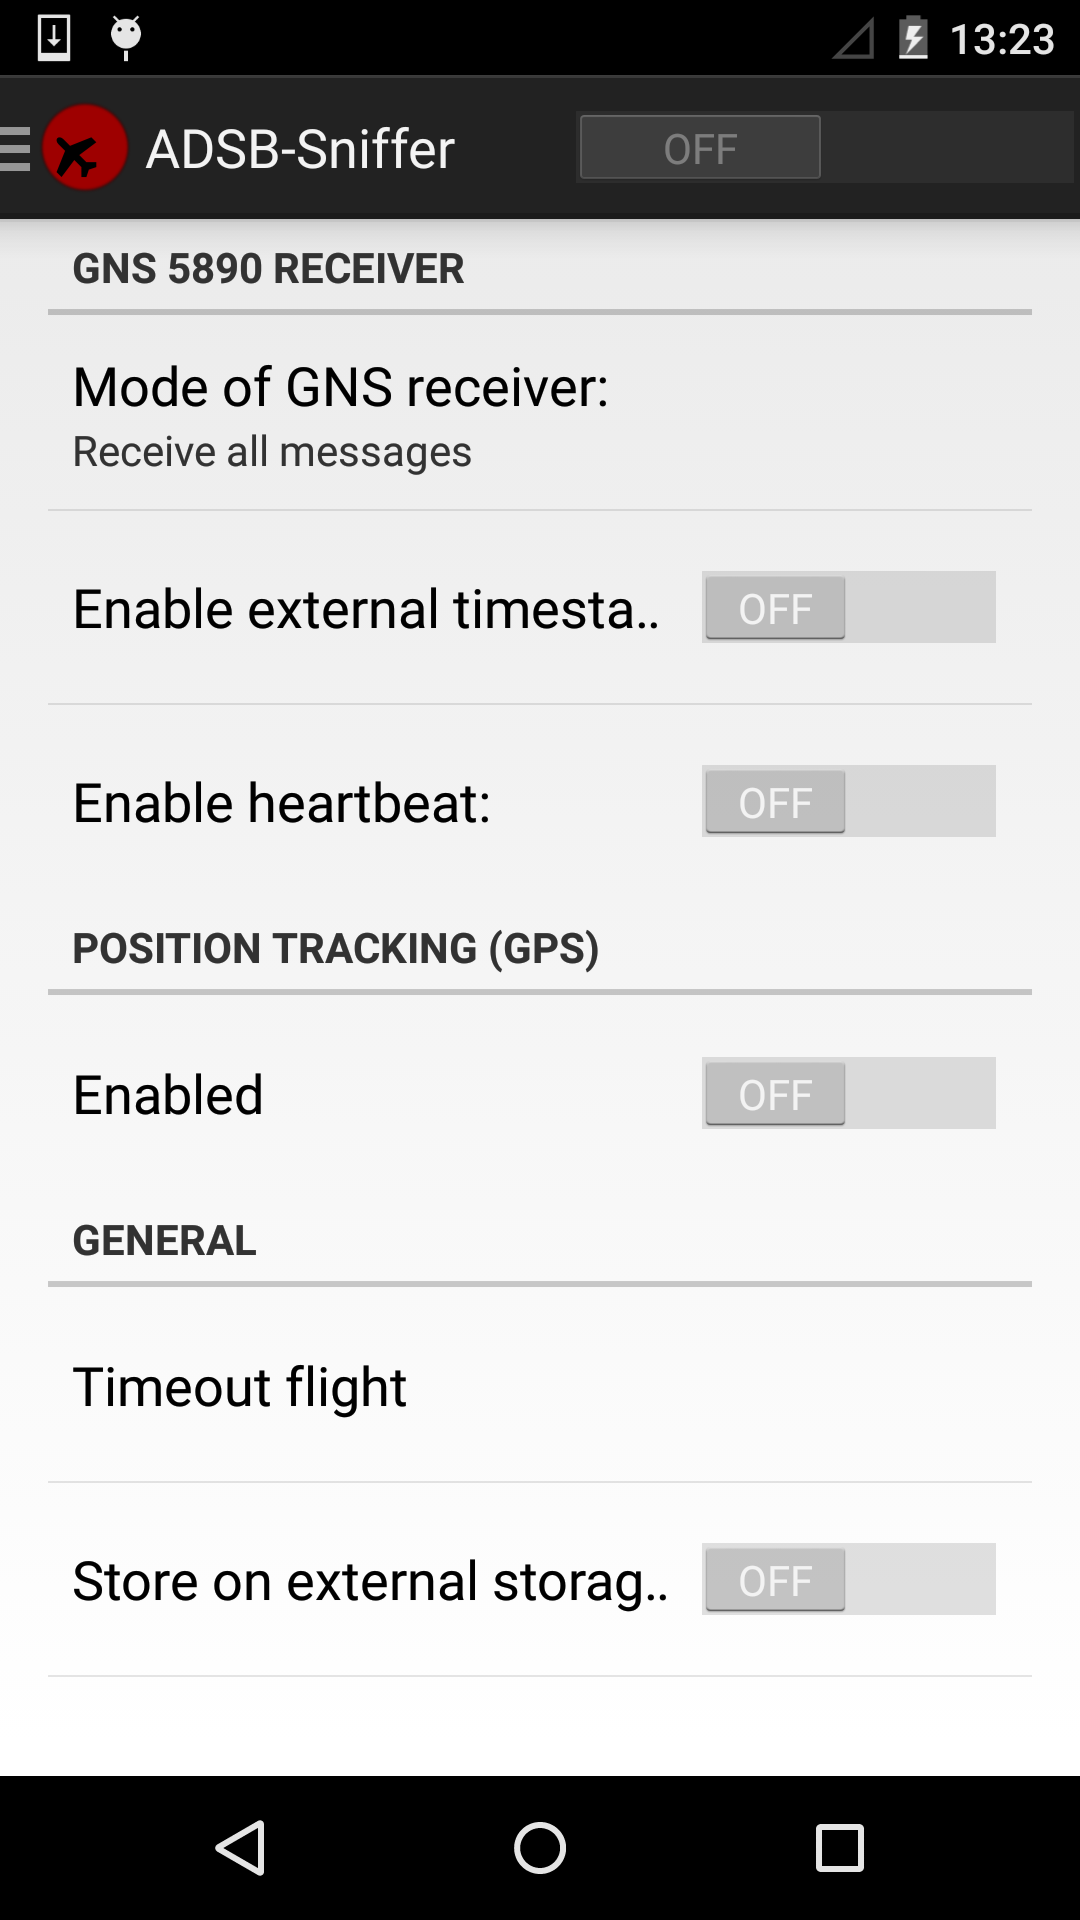 Android-based Mode S/ADS-B Recorder